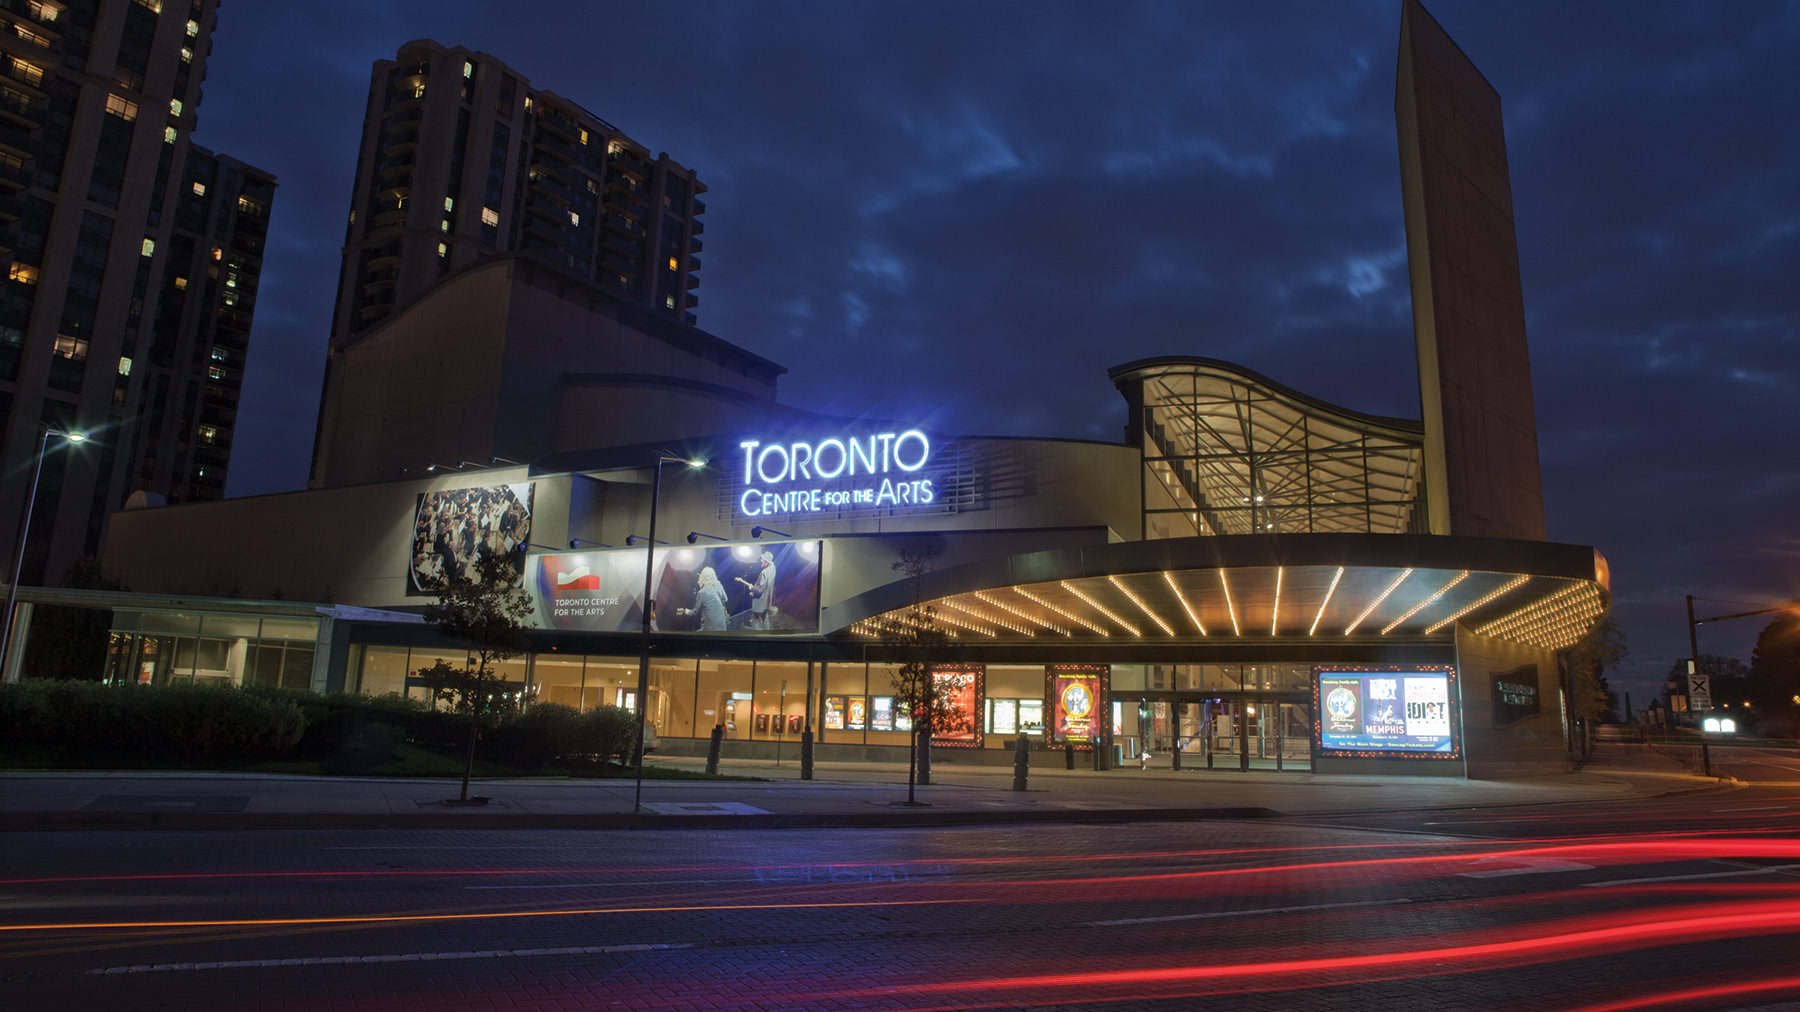 Studio Theatre @ Toronto Centre for the Arts